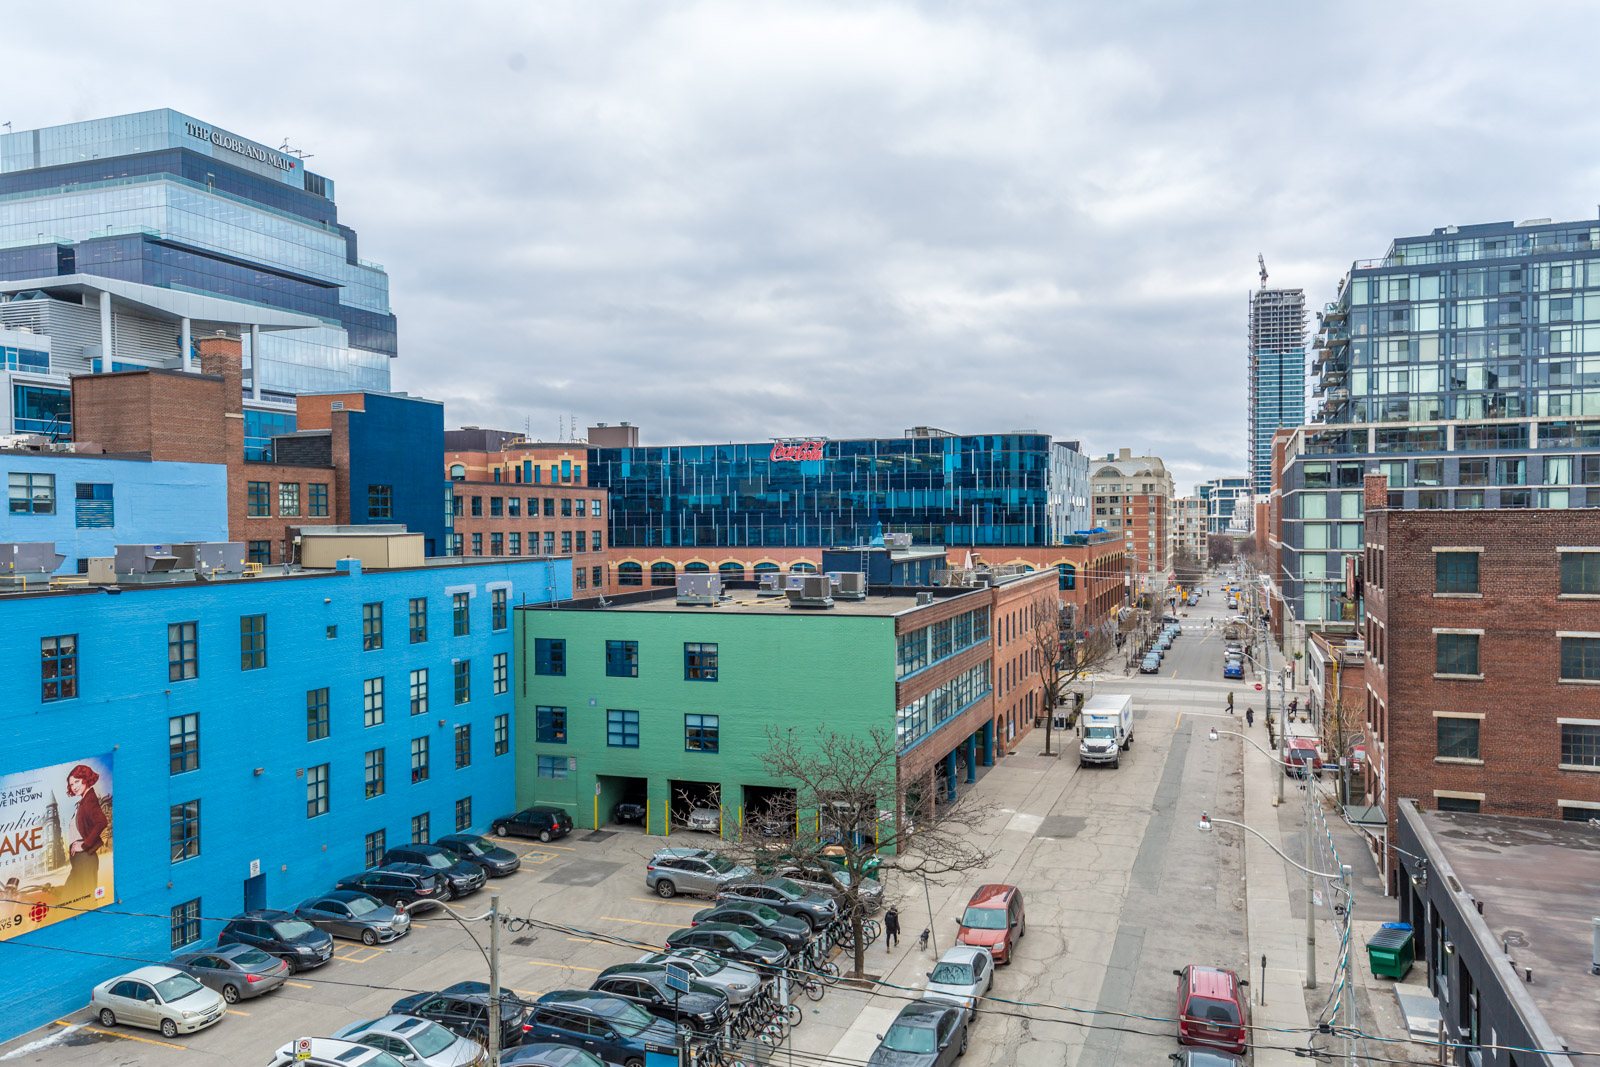 Balcony view from Ivory Condos of Sherbourne and Adelaide St in Moss Park with blue and green buildings.